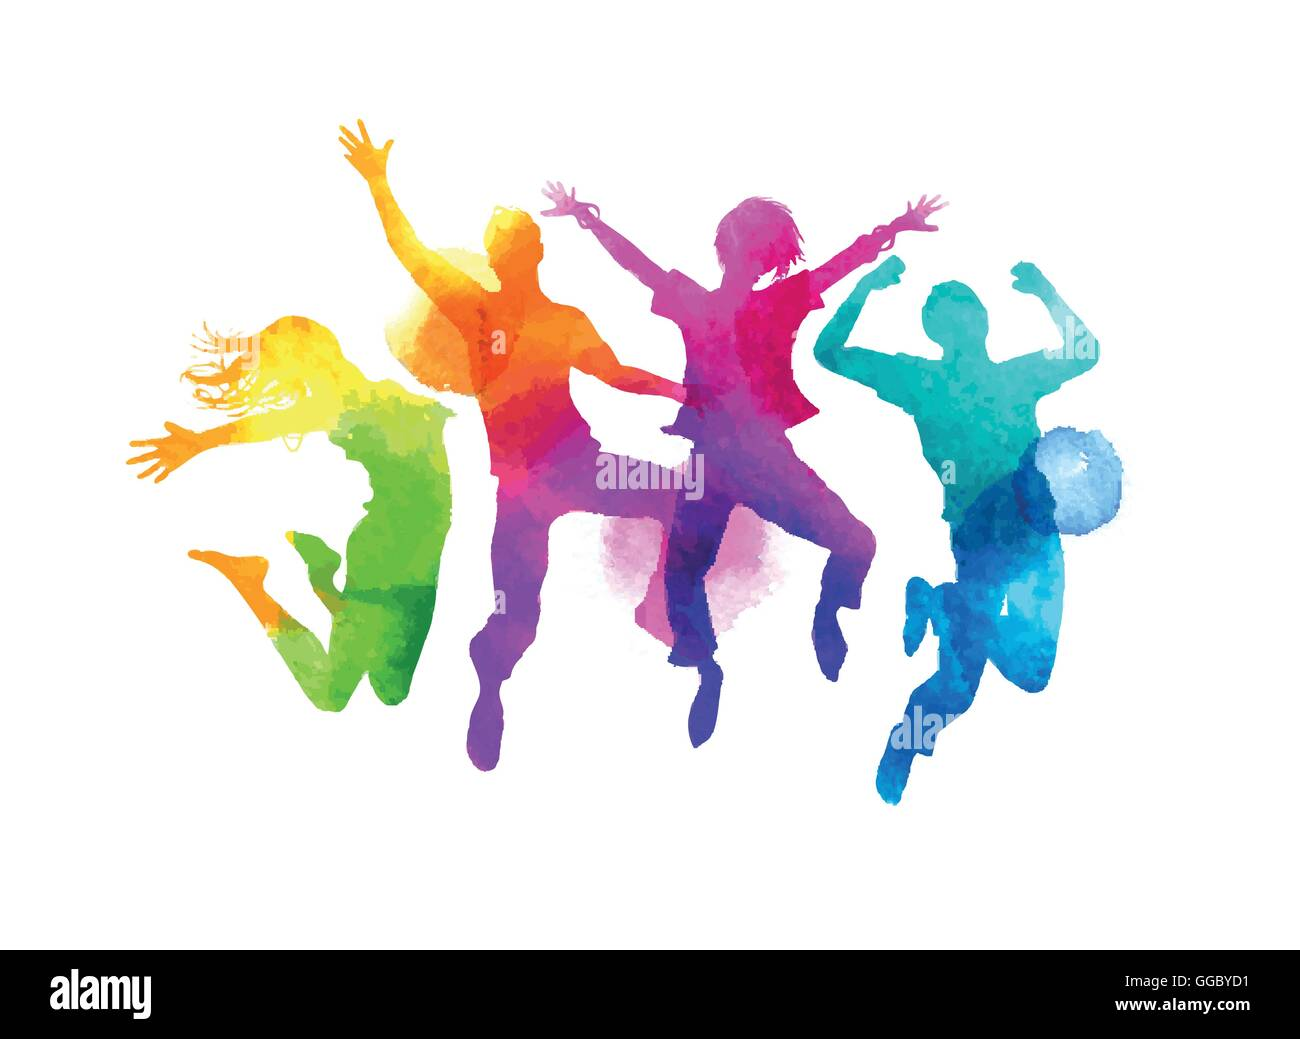 A group of friends jumping expressing happiness. Watercolour vector illustration. - Stock Image